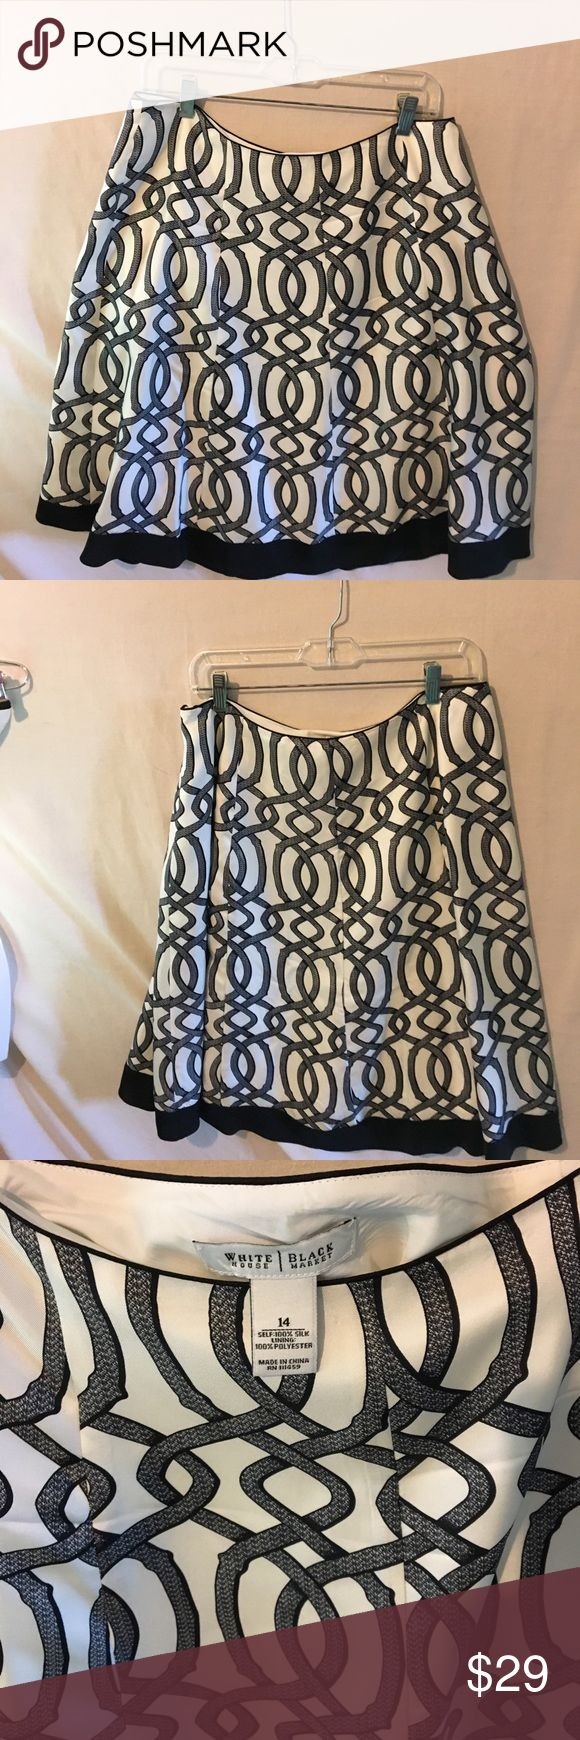 White House Black Market, size 14 silk skirt Lovely white with black link designs 100% silk skirt, size 14.  EUC, very flattering; pair with red heels 👠 for a standout look! White House Black Market Skirts Midi